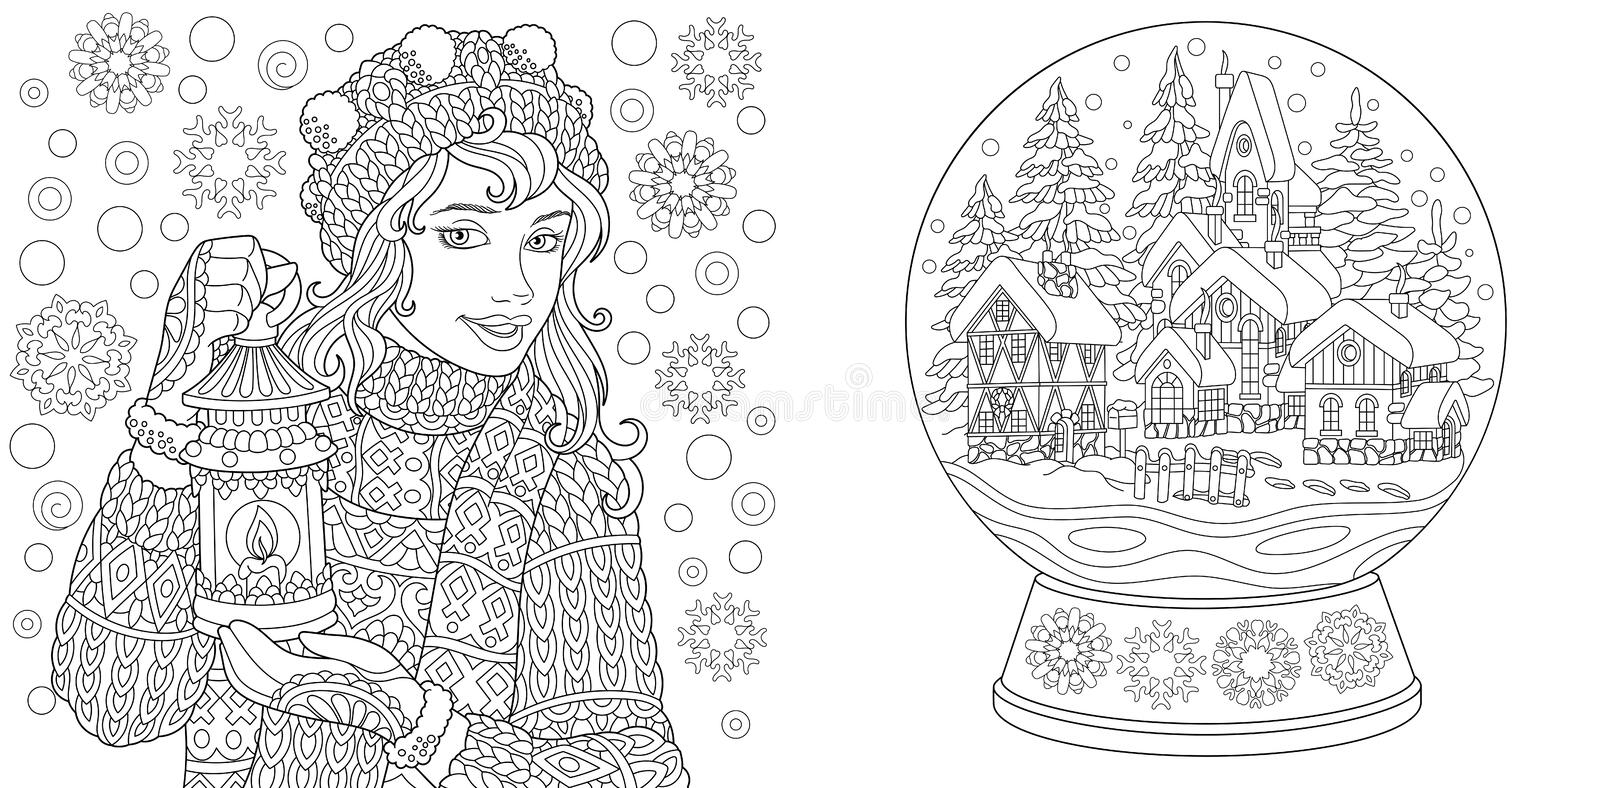 Coloring Pages. Coloring Book for adults. Colouring pictures with winter girl and crystal snow ball. Antistress freehand sketch stock illustration